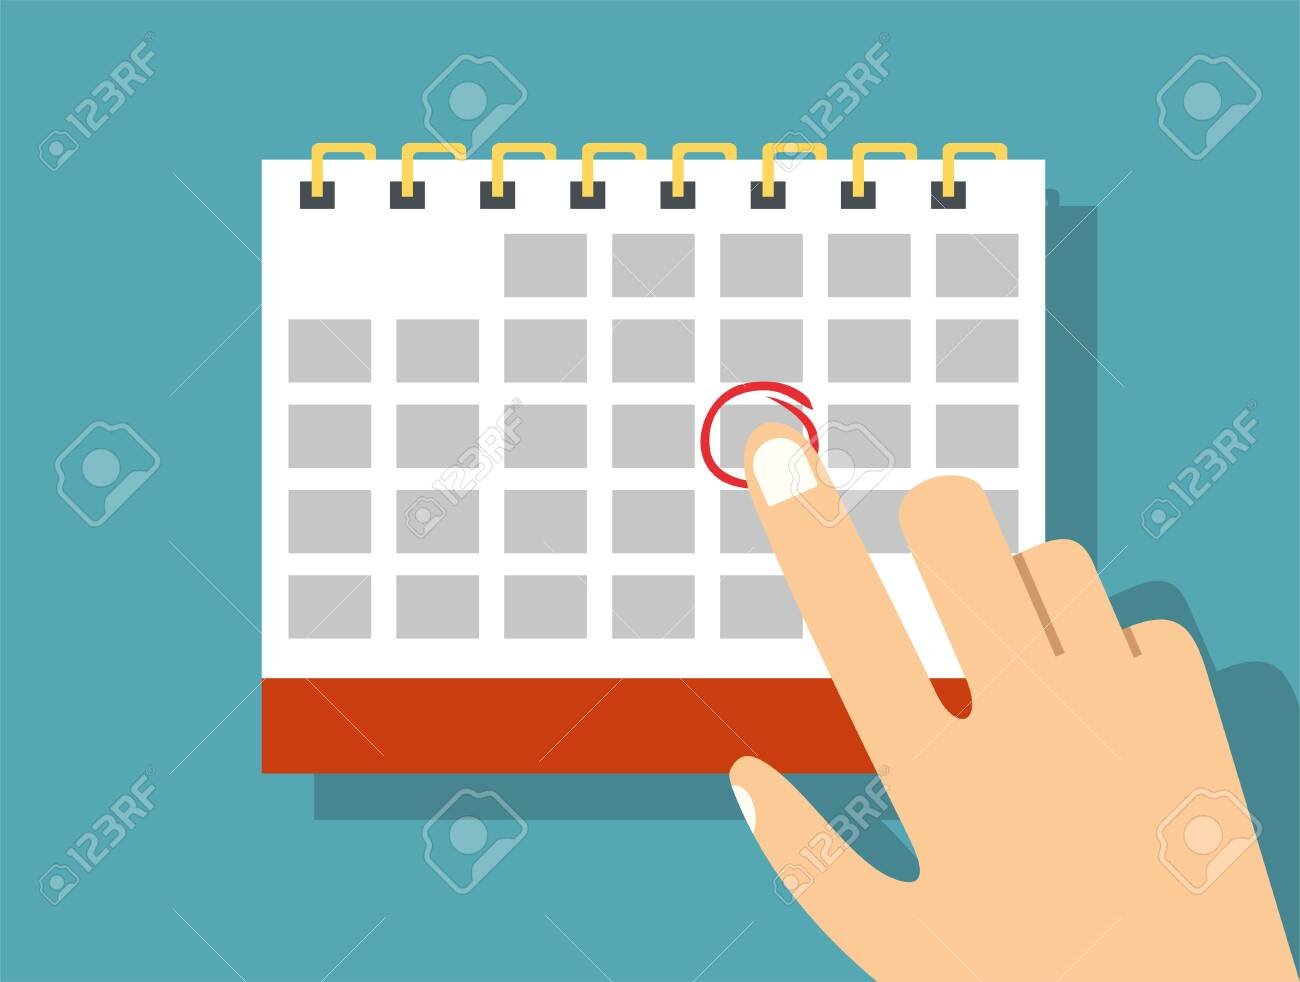 Paper spiral wall calendar. Schedule, appointment, organizer, timesheet, time management, important date. illustration in flat style - 137461185